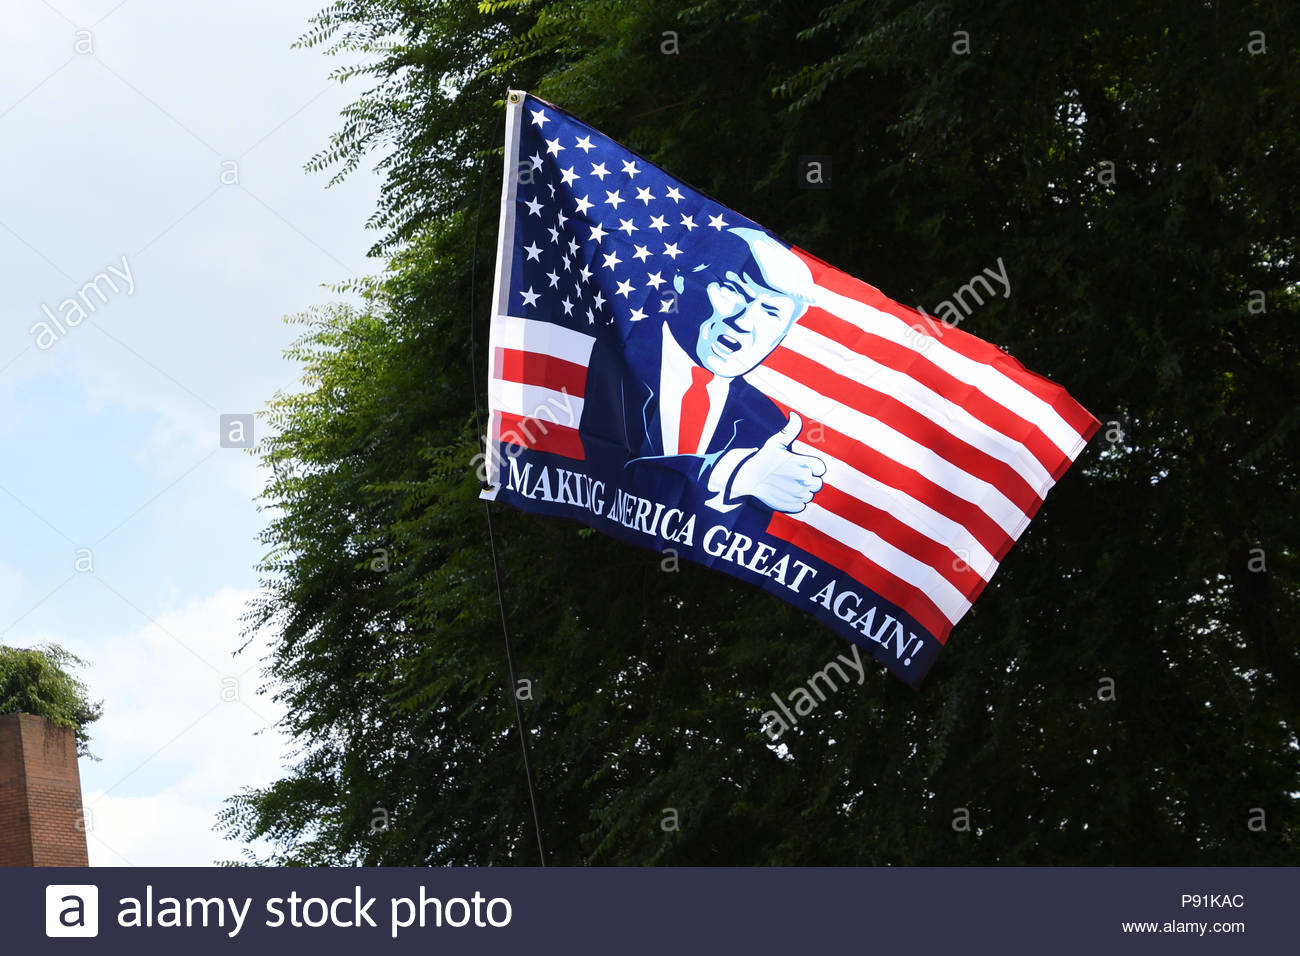 London, United Kingdom. 14th July, 2018. A Make America Great Again flag flies as hundreds of Trump supporters gather outside the US embassy in London, UK on July 14, 2018 for a Welcoming Trump to London rally in the British capital. (c) copyright Credit: CrowdSpark/Alamy Live News - Stock Image